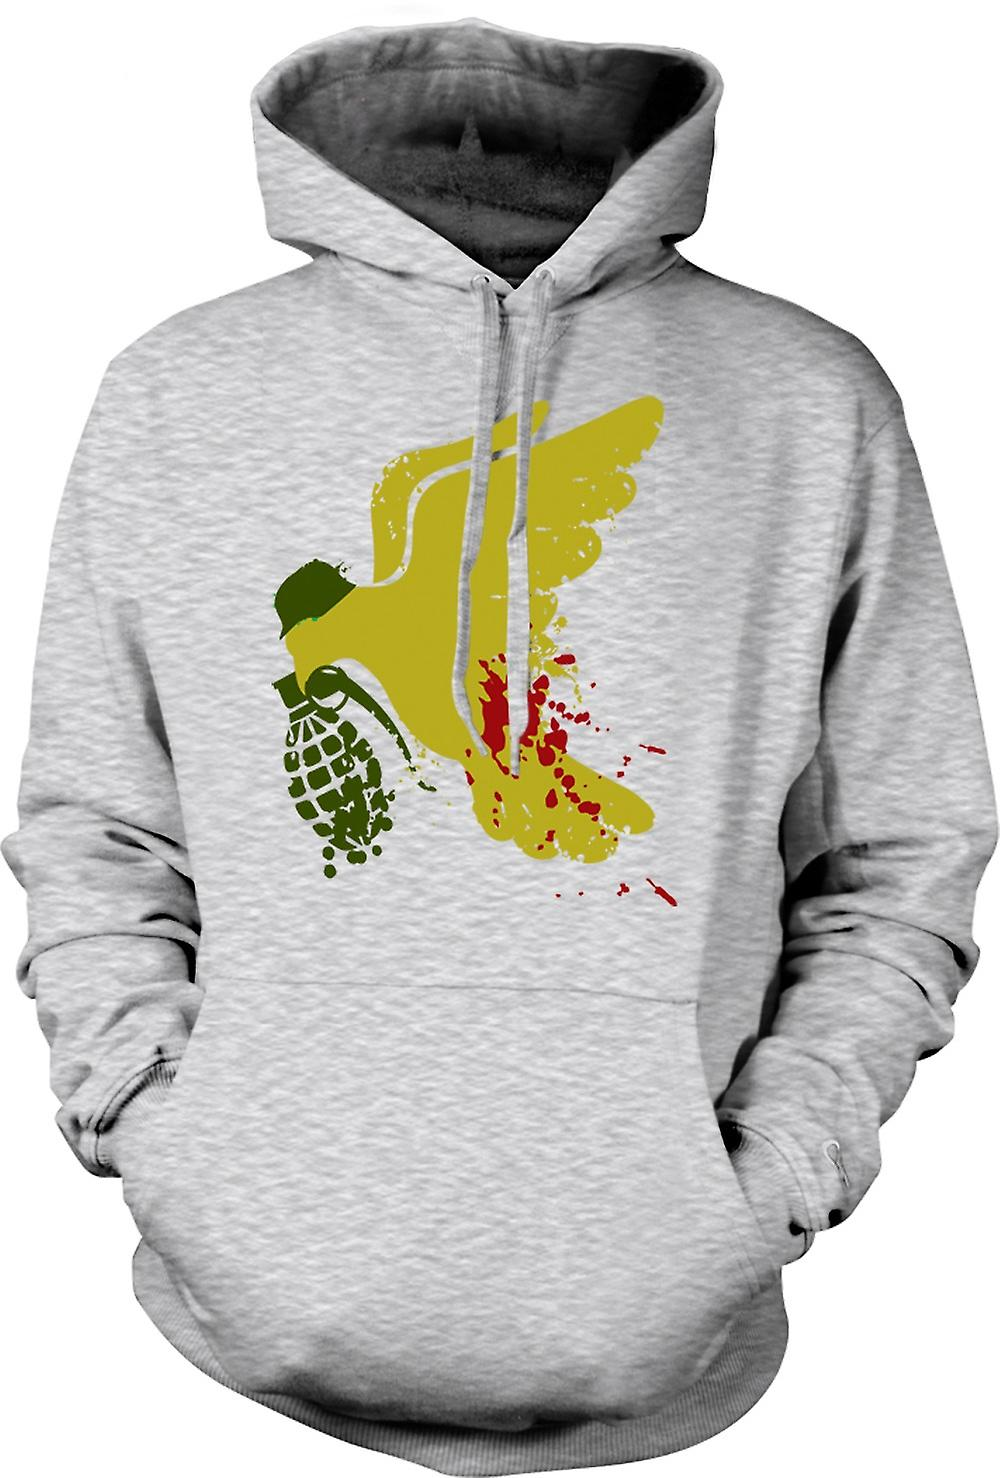 Mens Hoodie - Peace Not War Dove Grenade - Funny